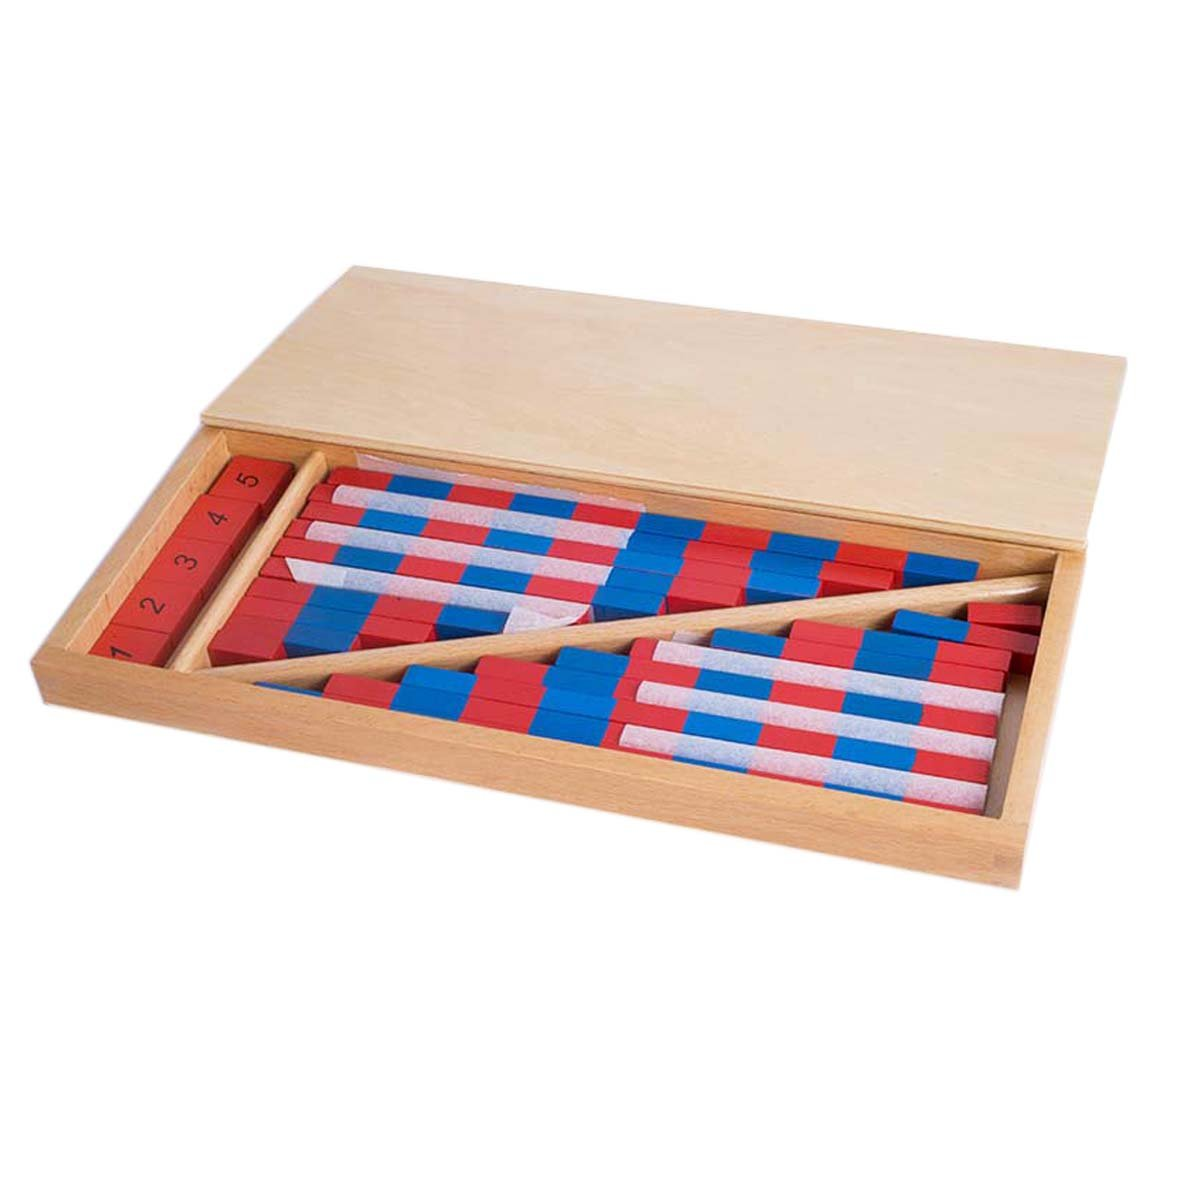 Montessori Mathematics Material - Small Numerical Rods with Number Tiles Blue Red Color W/ Wooden Box For Preschool Kids Early Development Toy